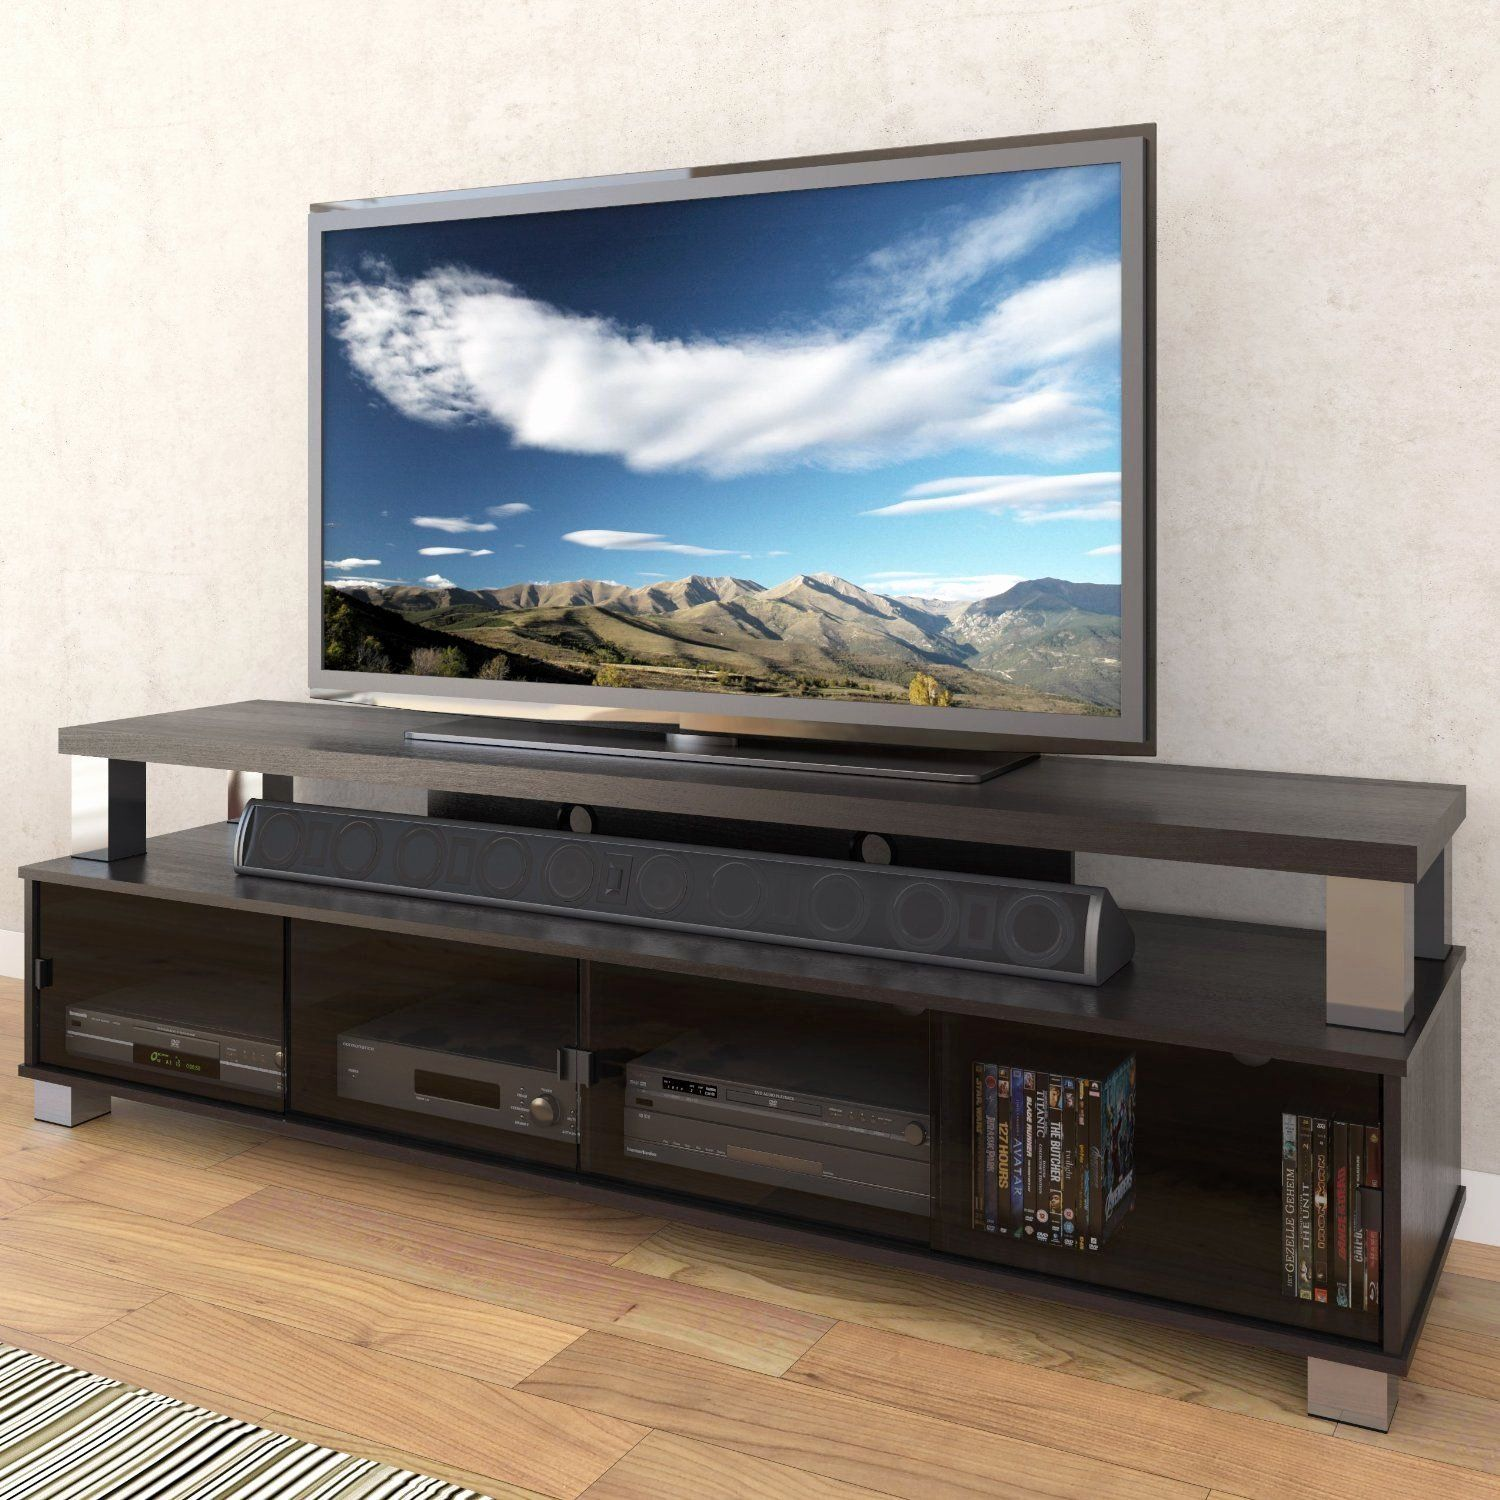 75 Inch Tv Stand Beautiful Awesome Contemporary Entertainment Centers For Flat Screen Tv Stand Designs Tv Stand Black Wood Flat Screen Tv Stand